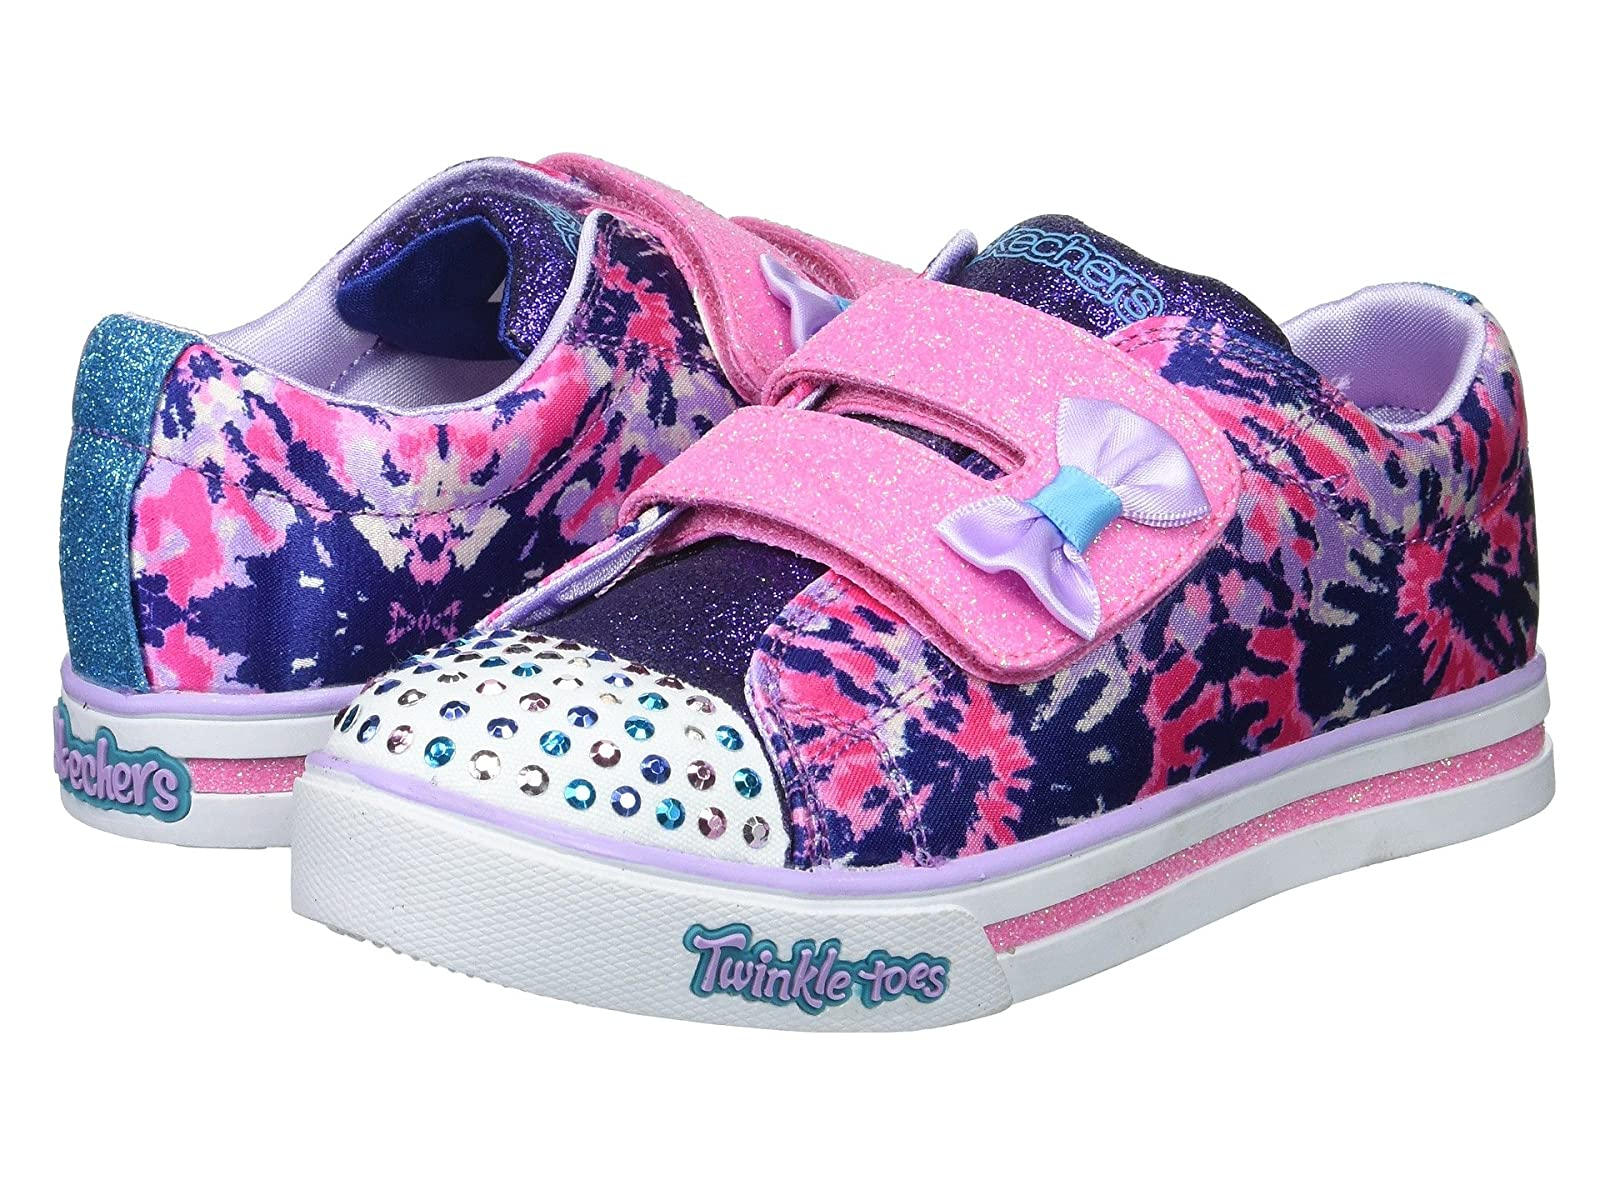 SKECHERS KIDS Glitz Twinkle Toes - Sparkle Glitz KIDS 10847N Lights (Toddler/Little Kid) b01b0e